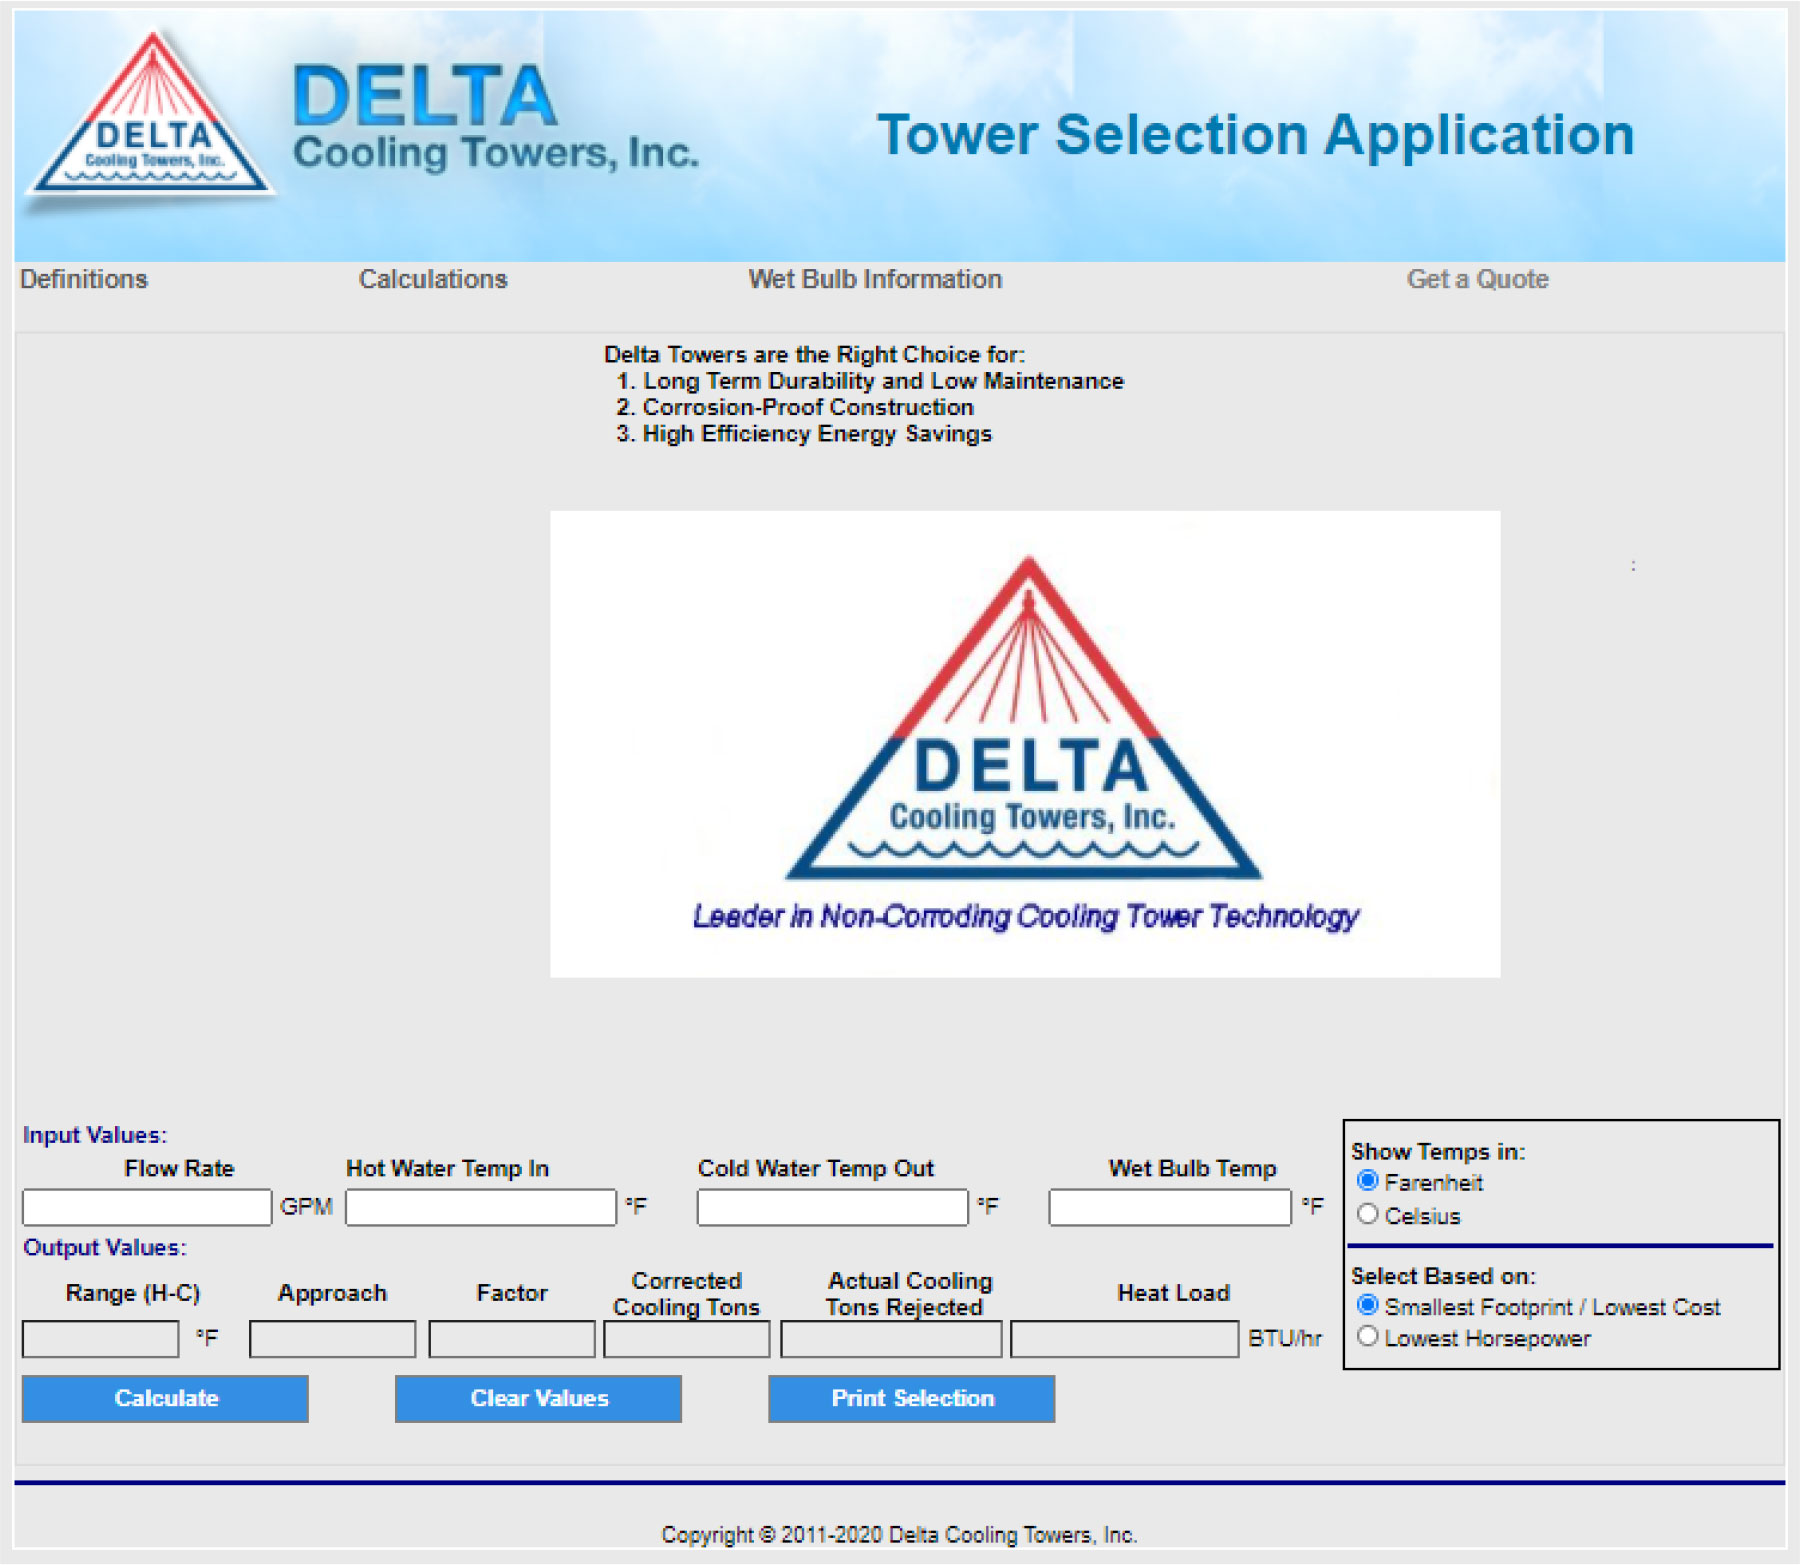 delta cooling towers tower selection application